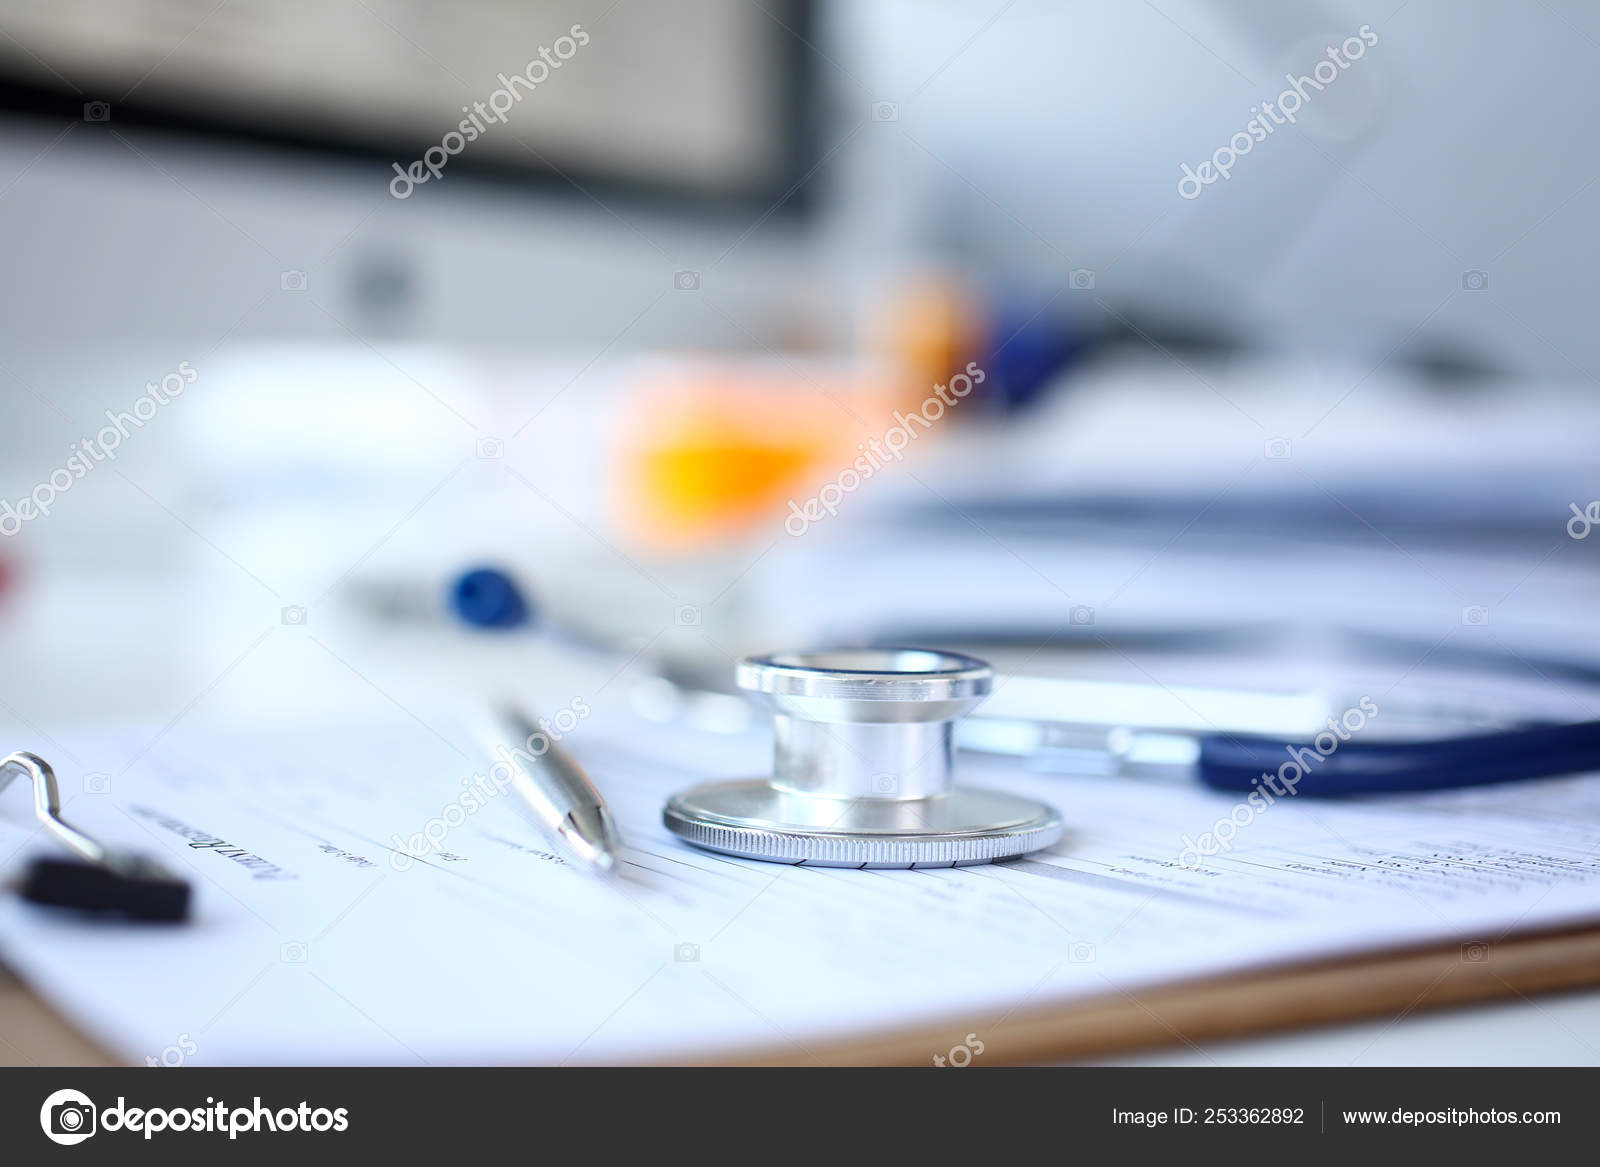 Stethoscope head and silver pen lying on medical application ... on medical assistant job application, office assistant job application, restaurant job application, medical center job application,